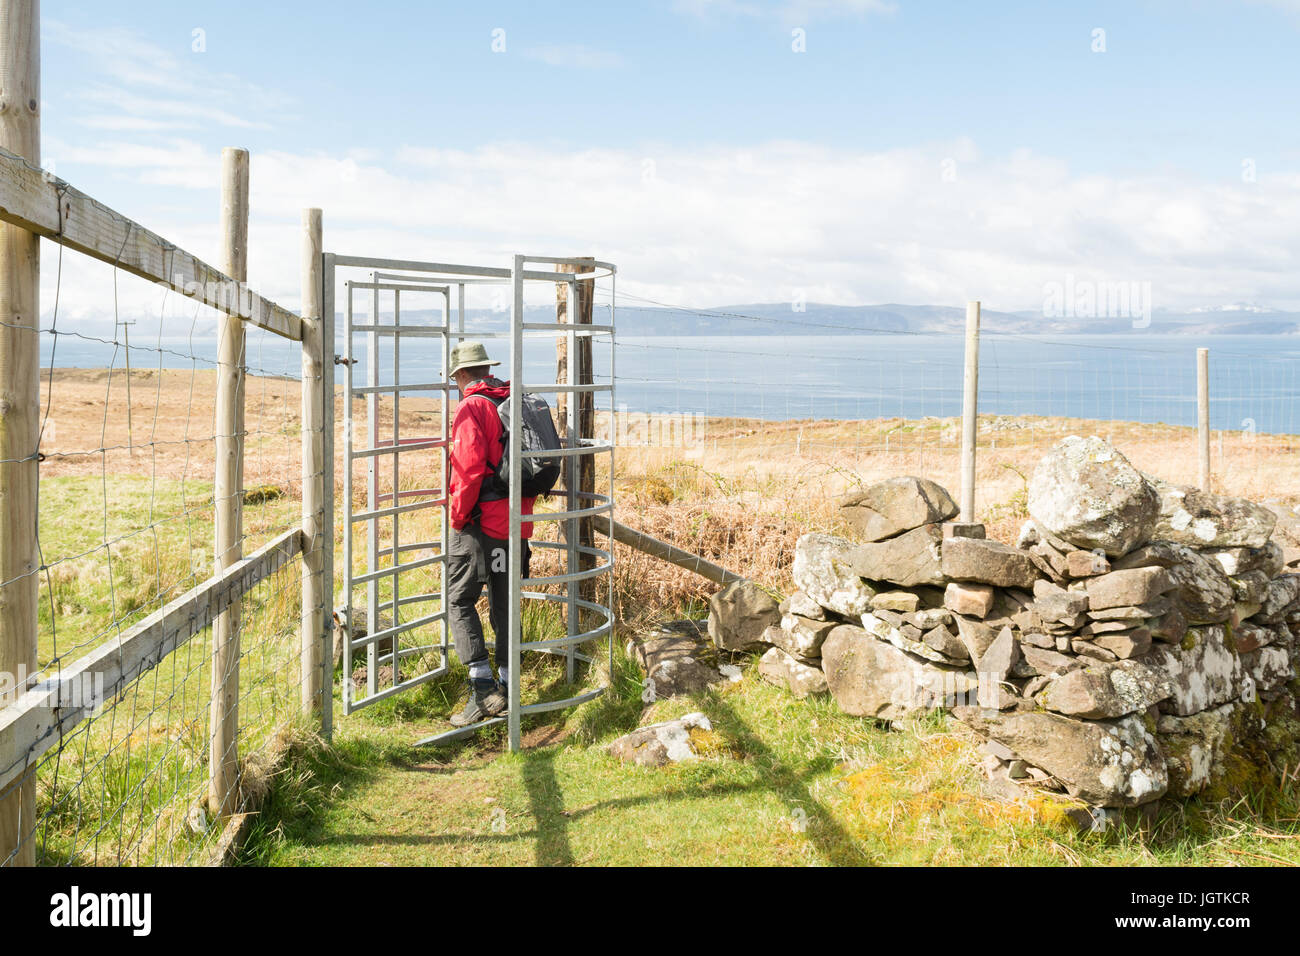 Deer proof metal gate and fencing - Applecross peninsula,  Wester Ross, Highland, Scotland, UK - Stock Image